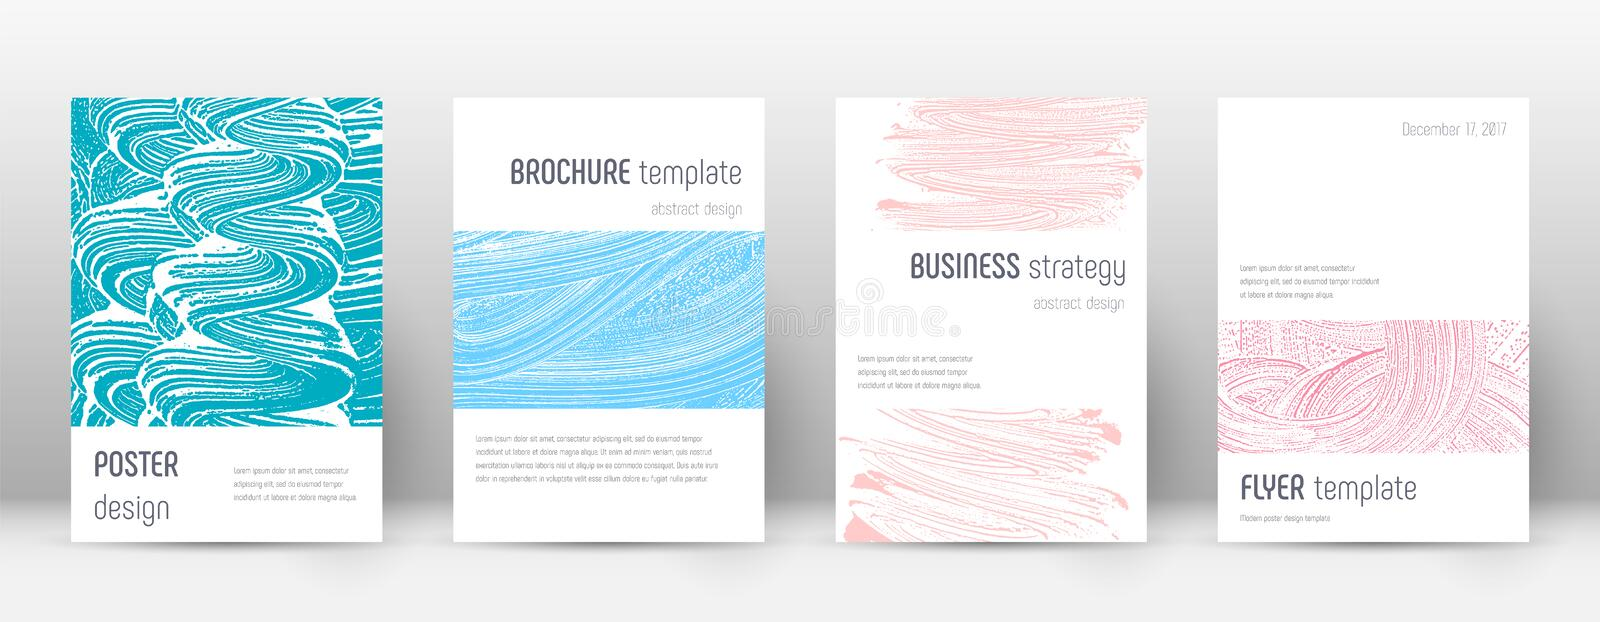 Cover page design template. Minimalistic brochure. Layout. Classic trendy abstract cover page. Pink and blue grunge texture background. Shapely poster vector illustration